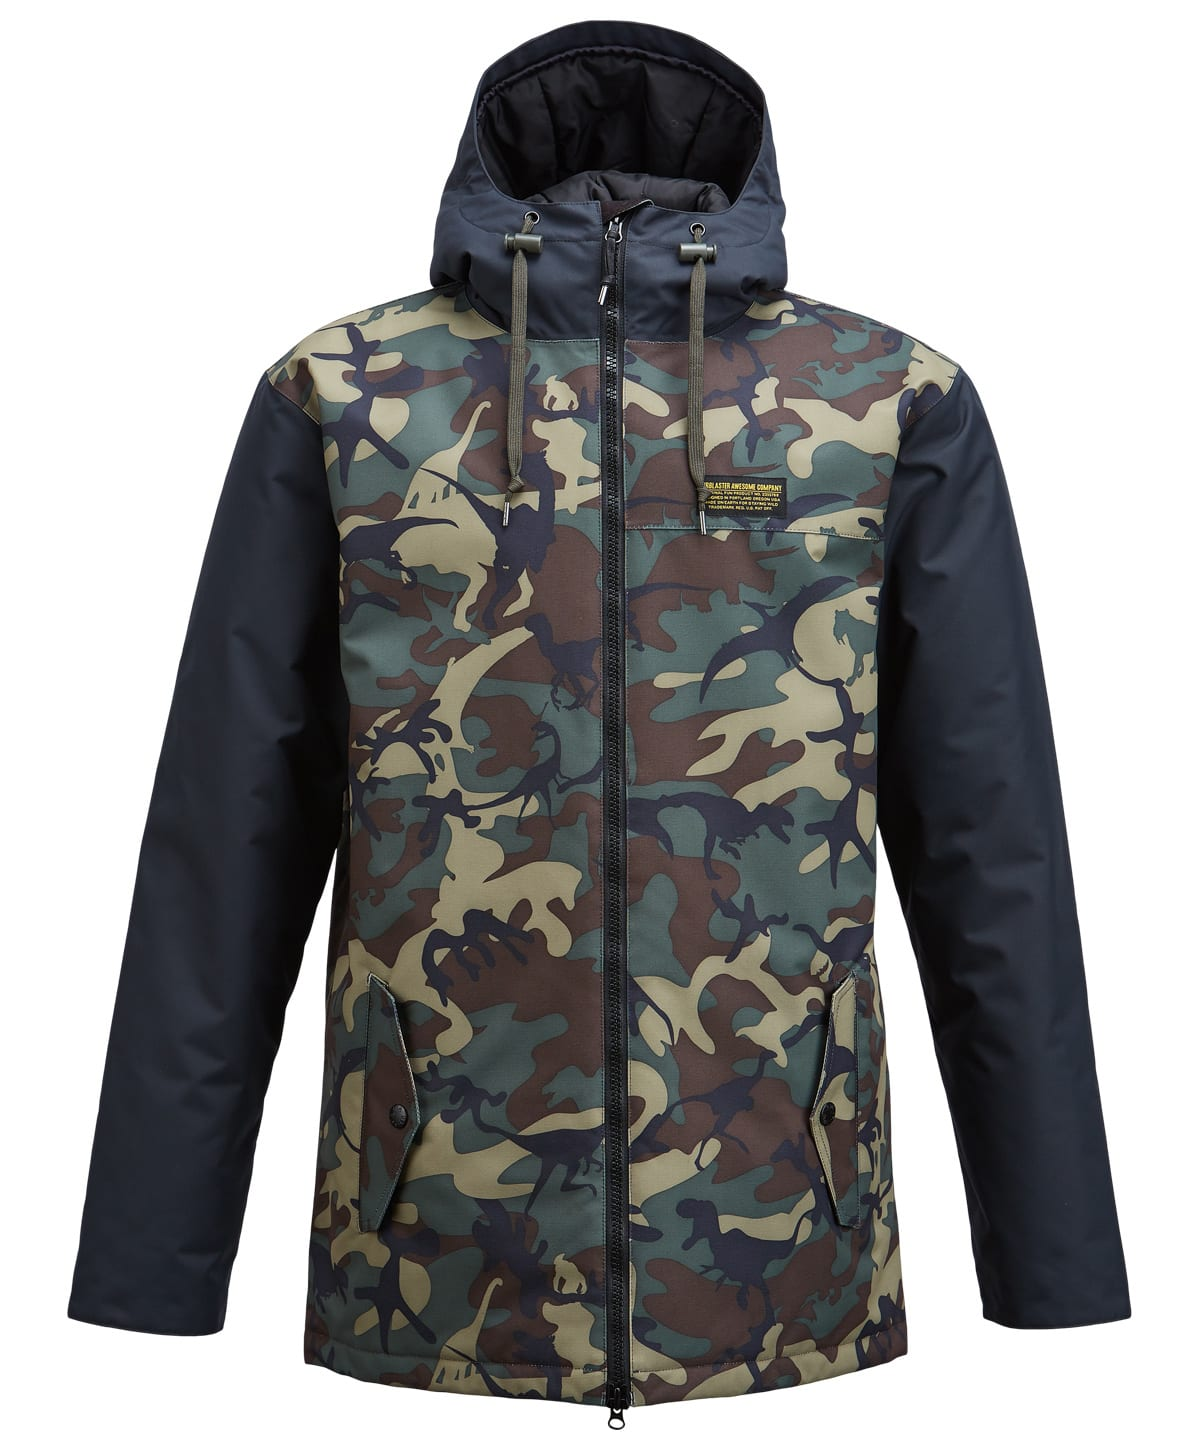 Click here for Airblaster Toaster Snowboard Jacket prices